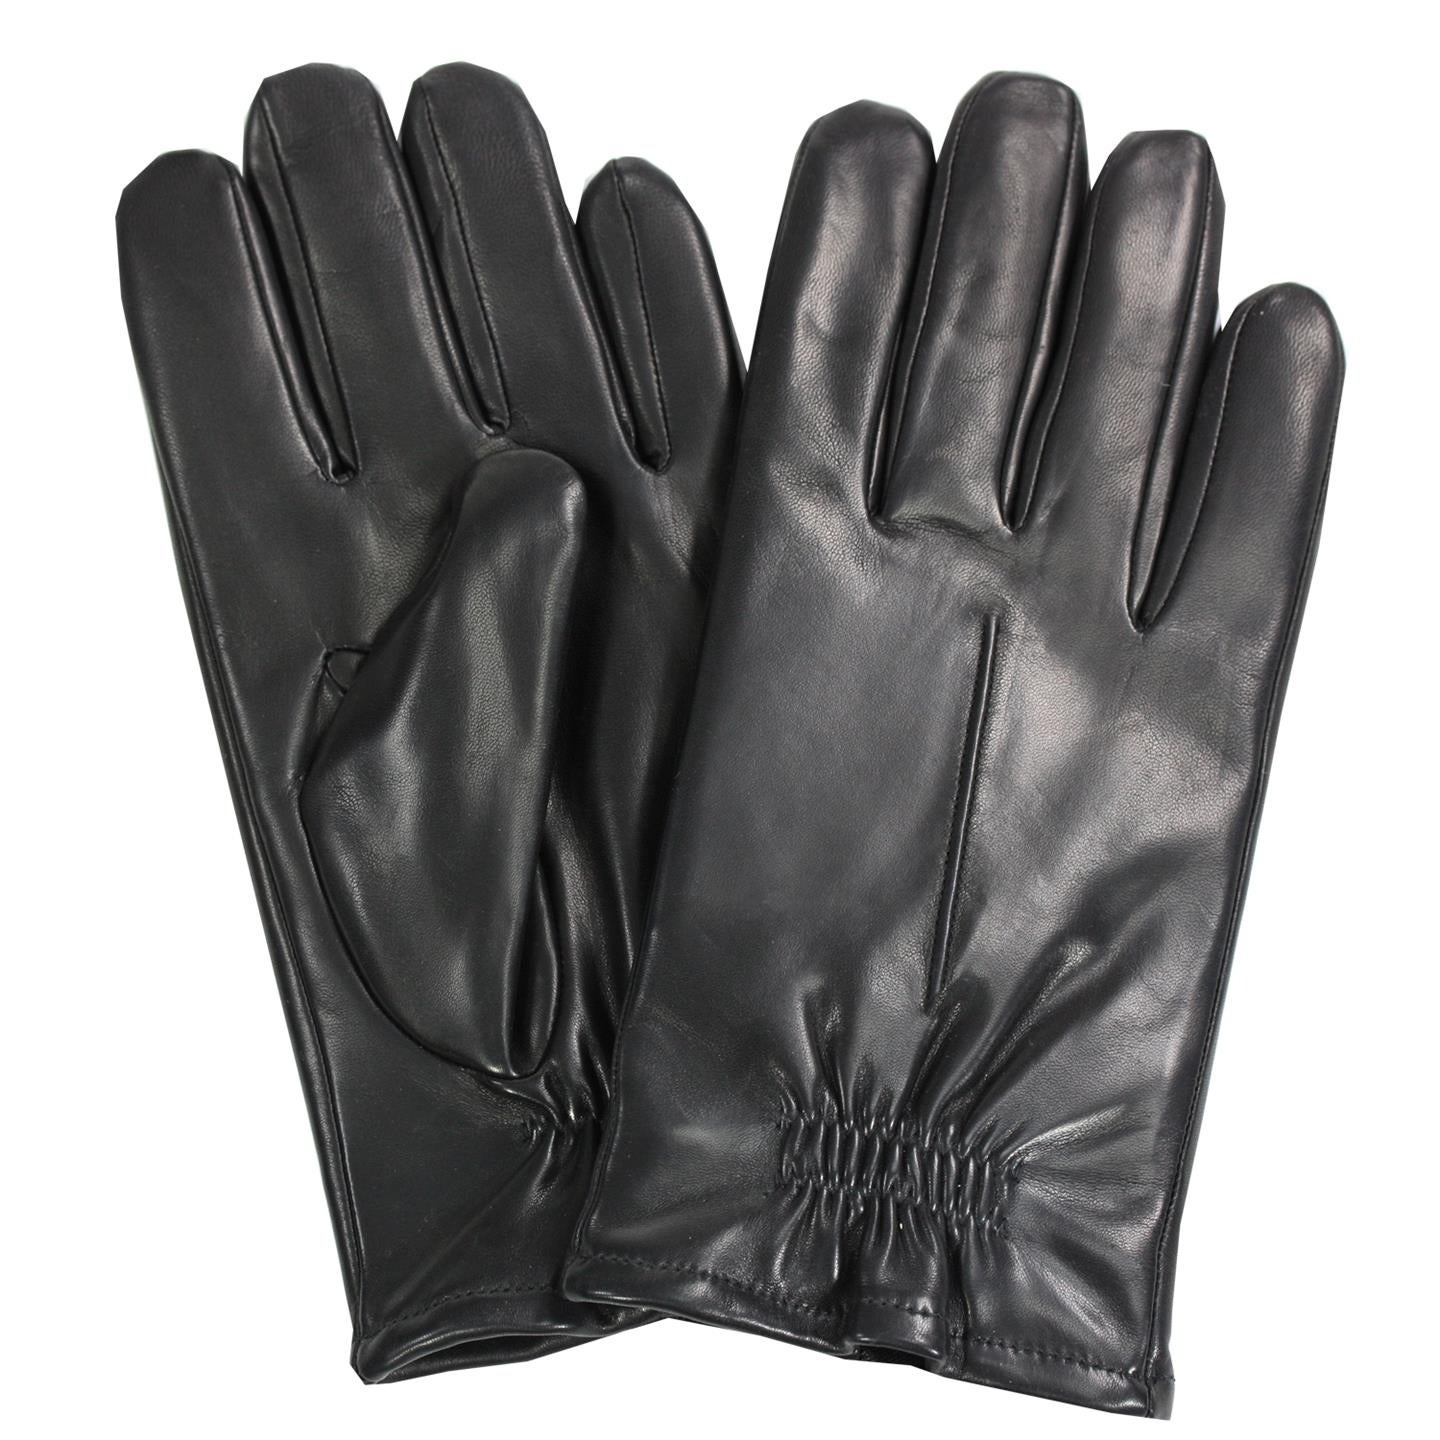 Epoch Mens Leather Thinsulate Lined Glove Black FREE 2 DAY SHIPPING